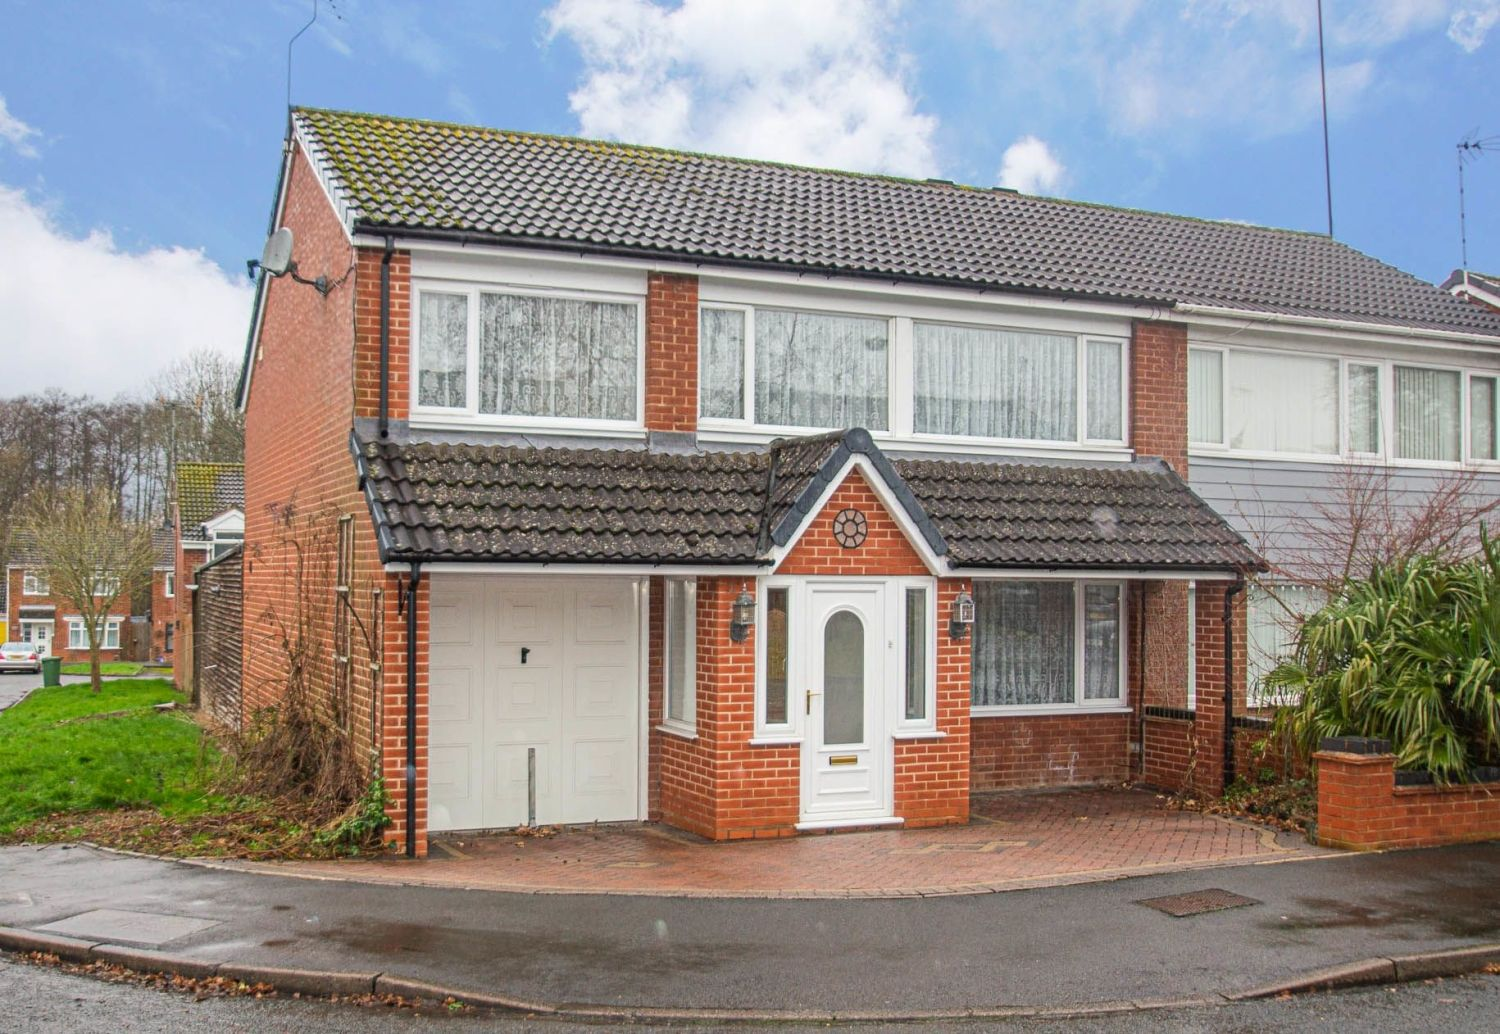 3 bed semi-detached for sale in Cheswick Close, Winyates Green 1